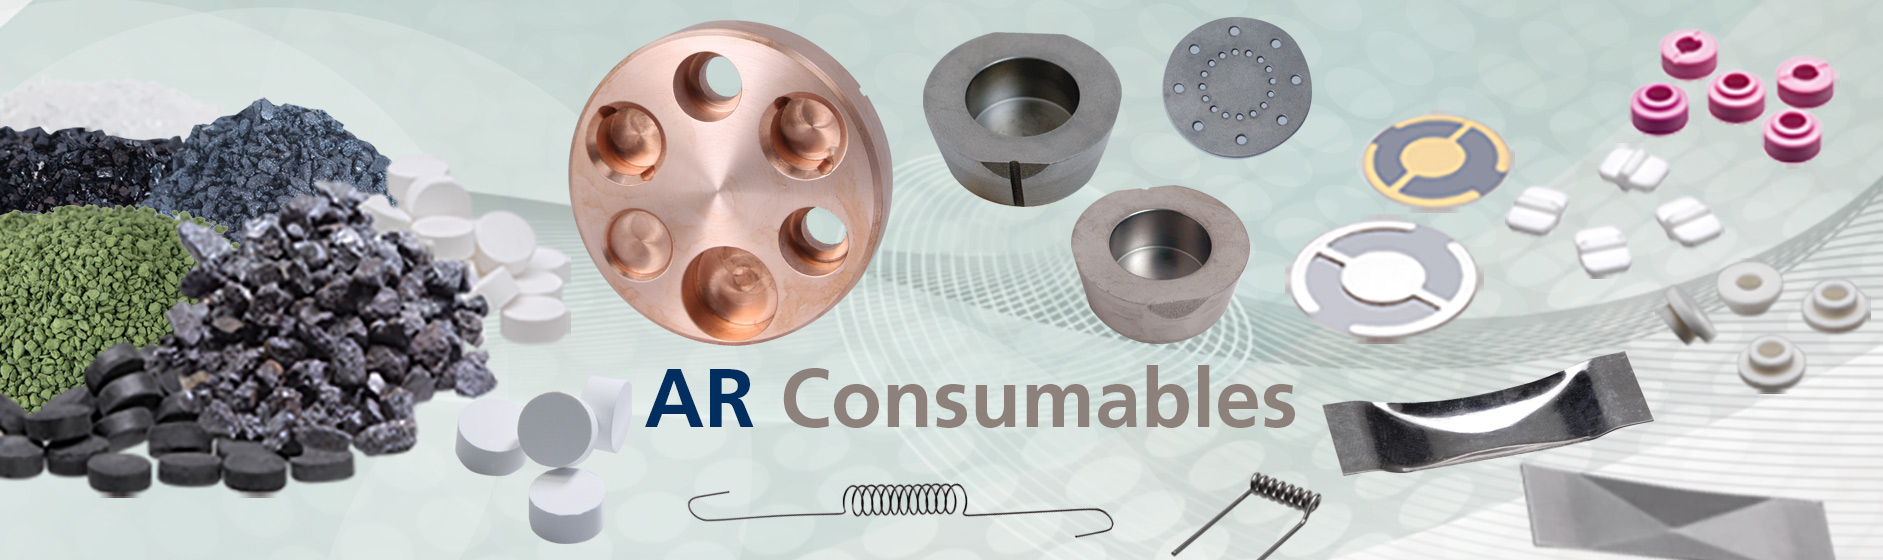 AR-Consumables-banner-ad-HP-1219